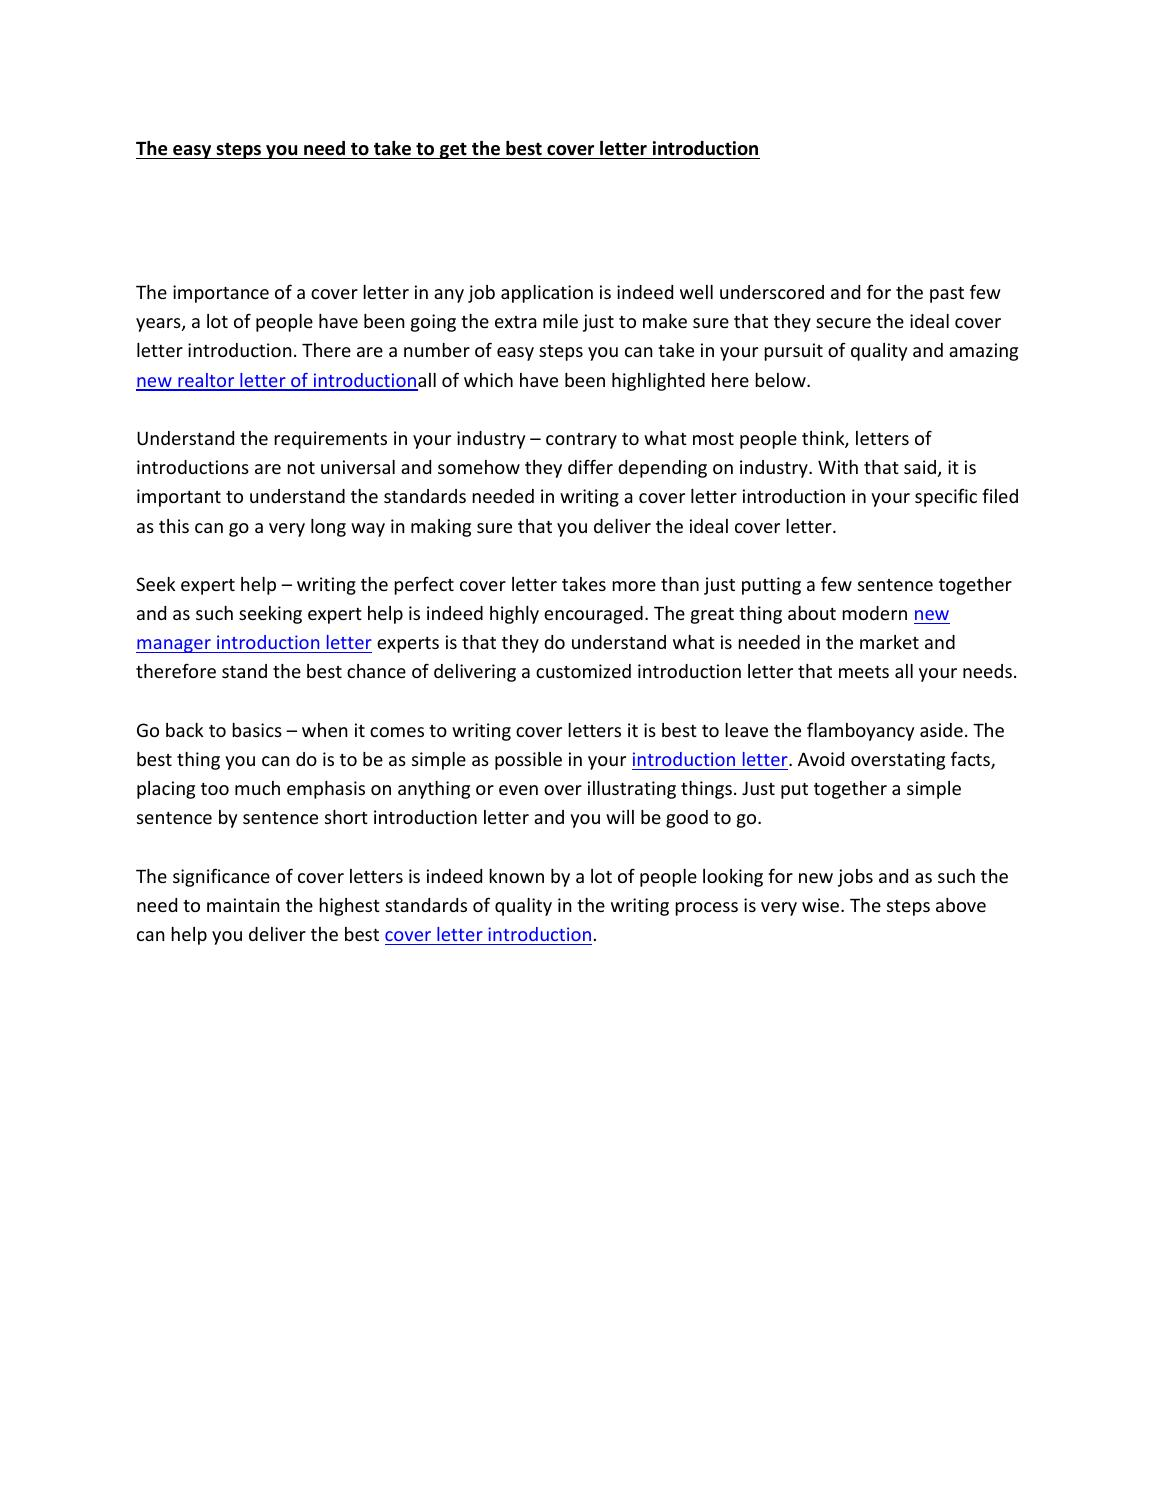 The Easy Steps You Need To Take To Get The Best Cover Letter Introduction  By DavidDavis9170   Issuu